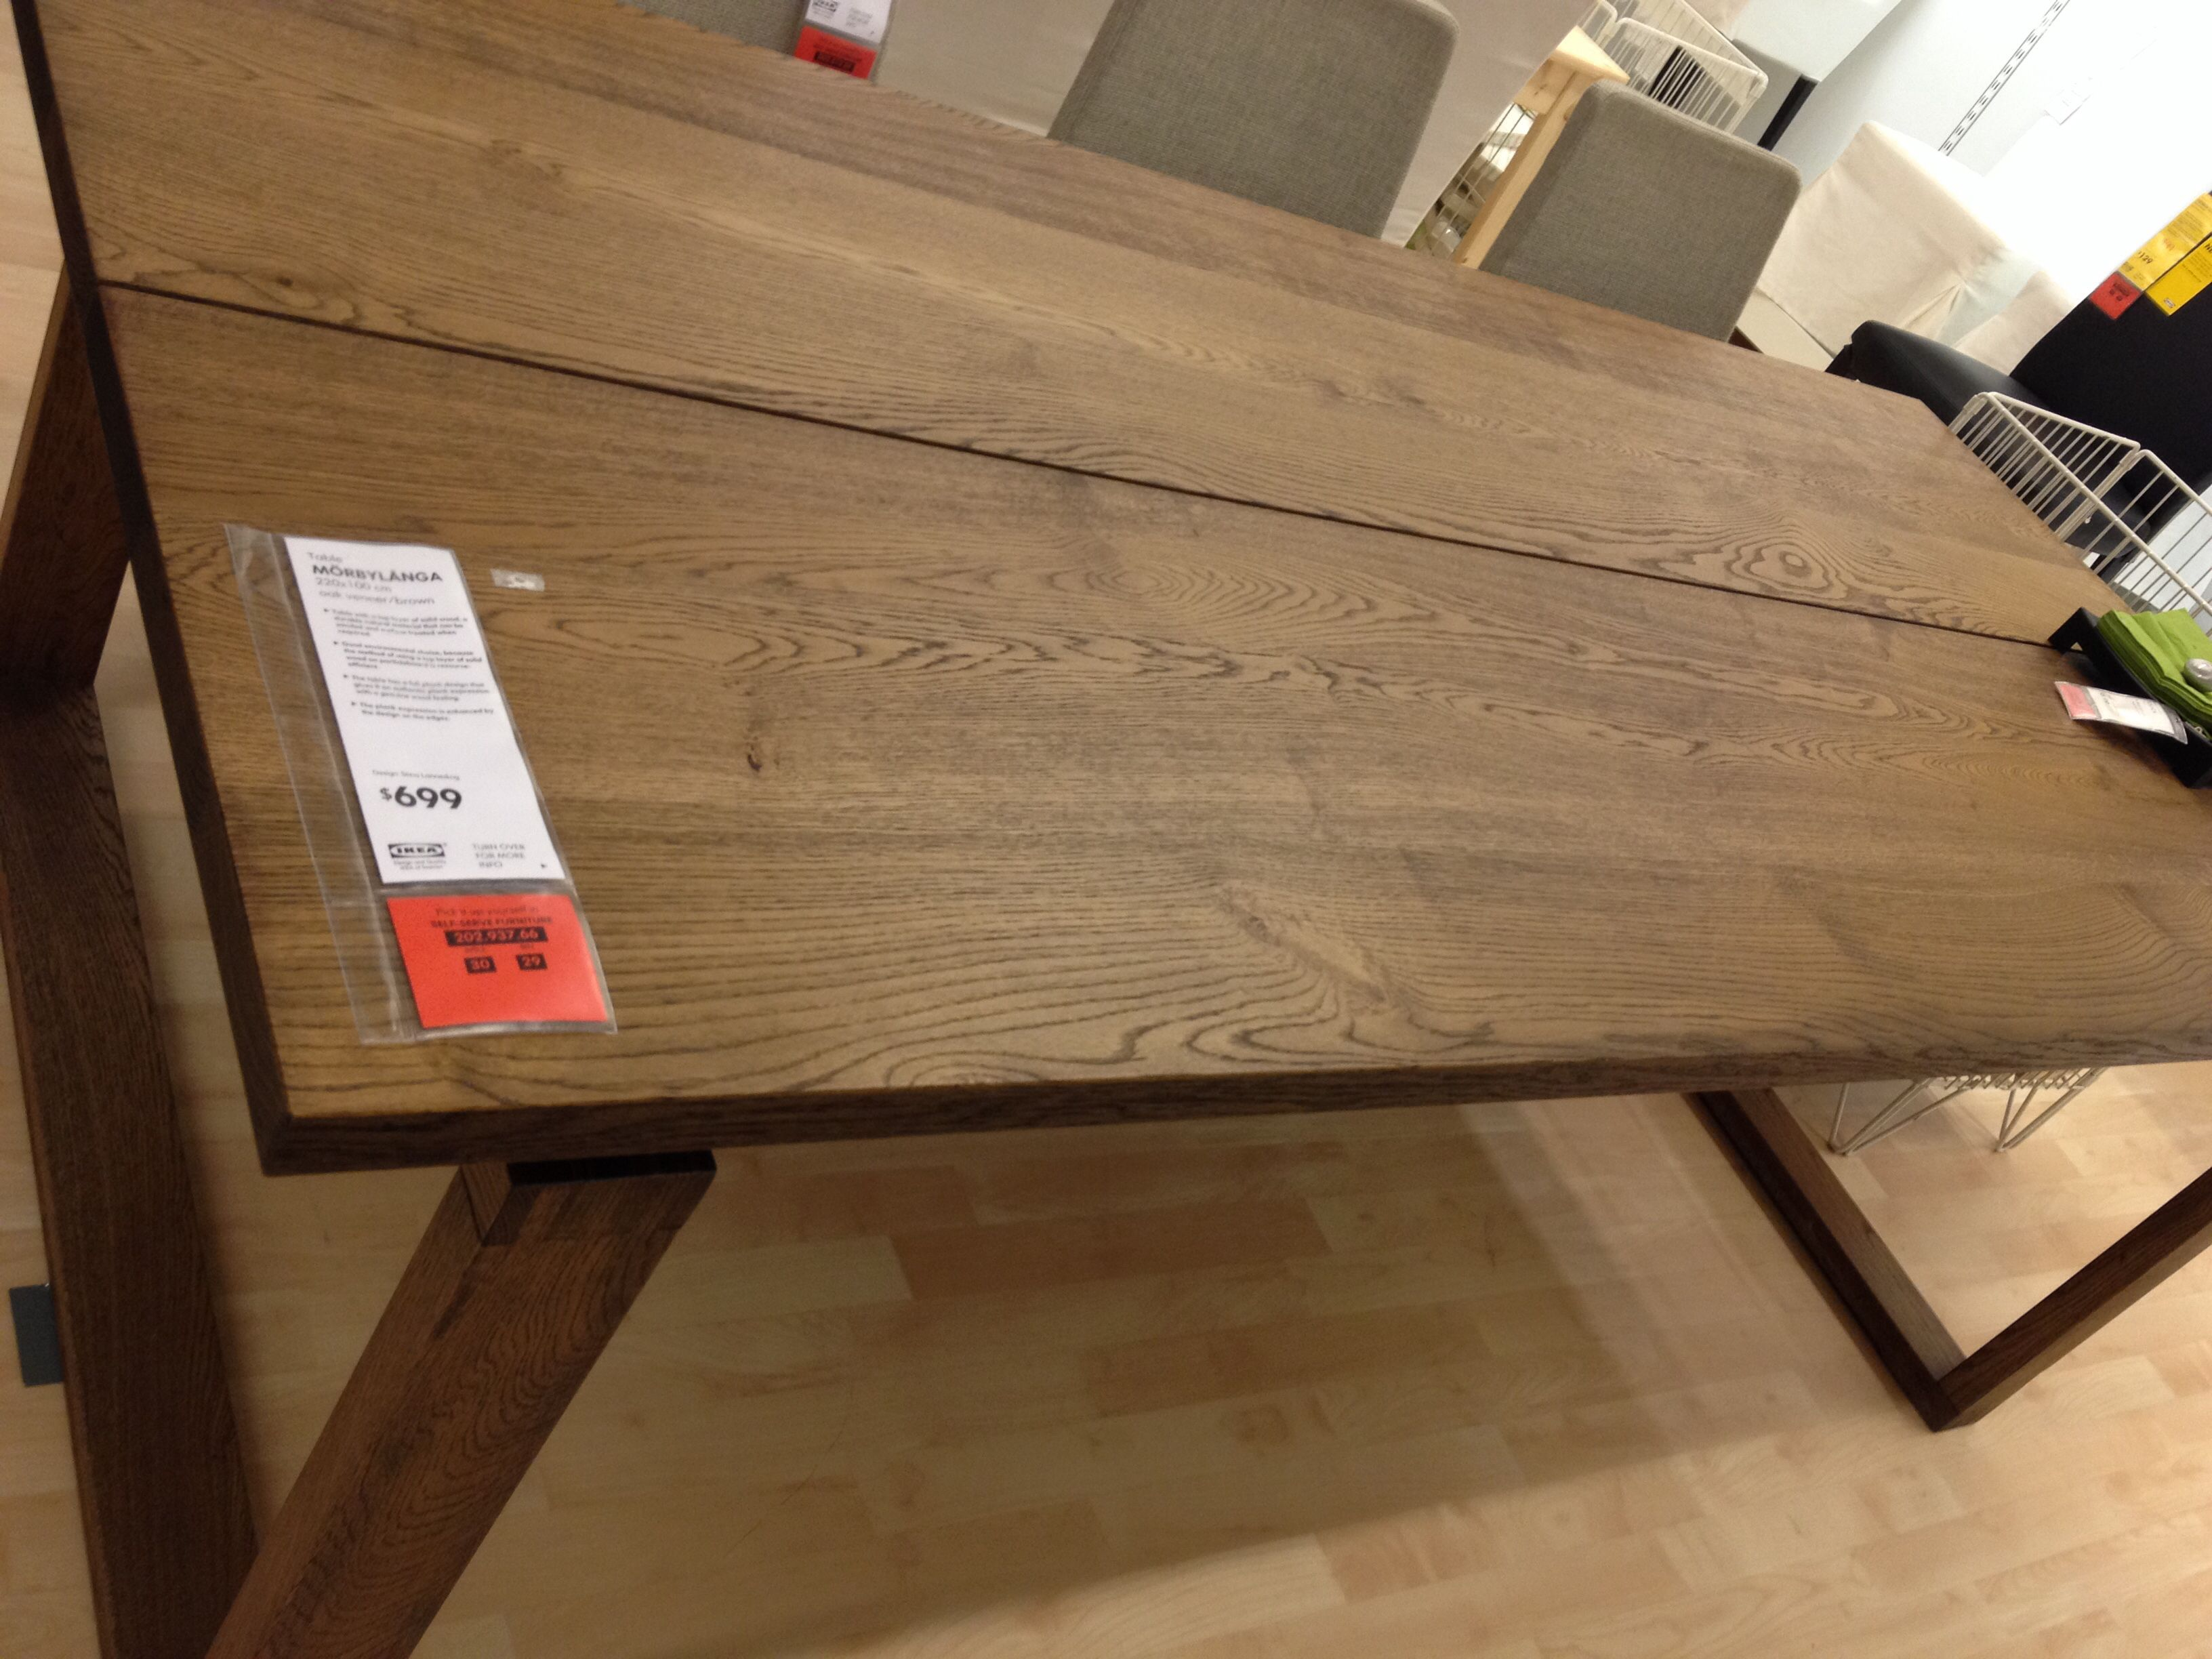 Ikea Stenstorp Kücheninsel Kaufen Incroyable De Table Ikea Cuisine Conception Idées De Table